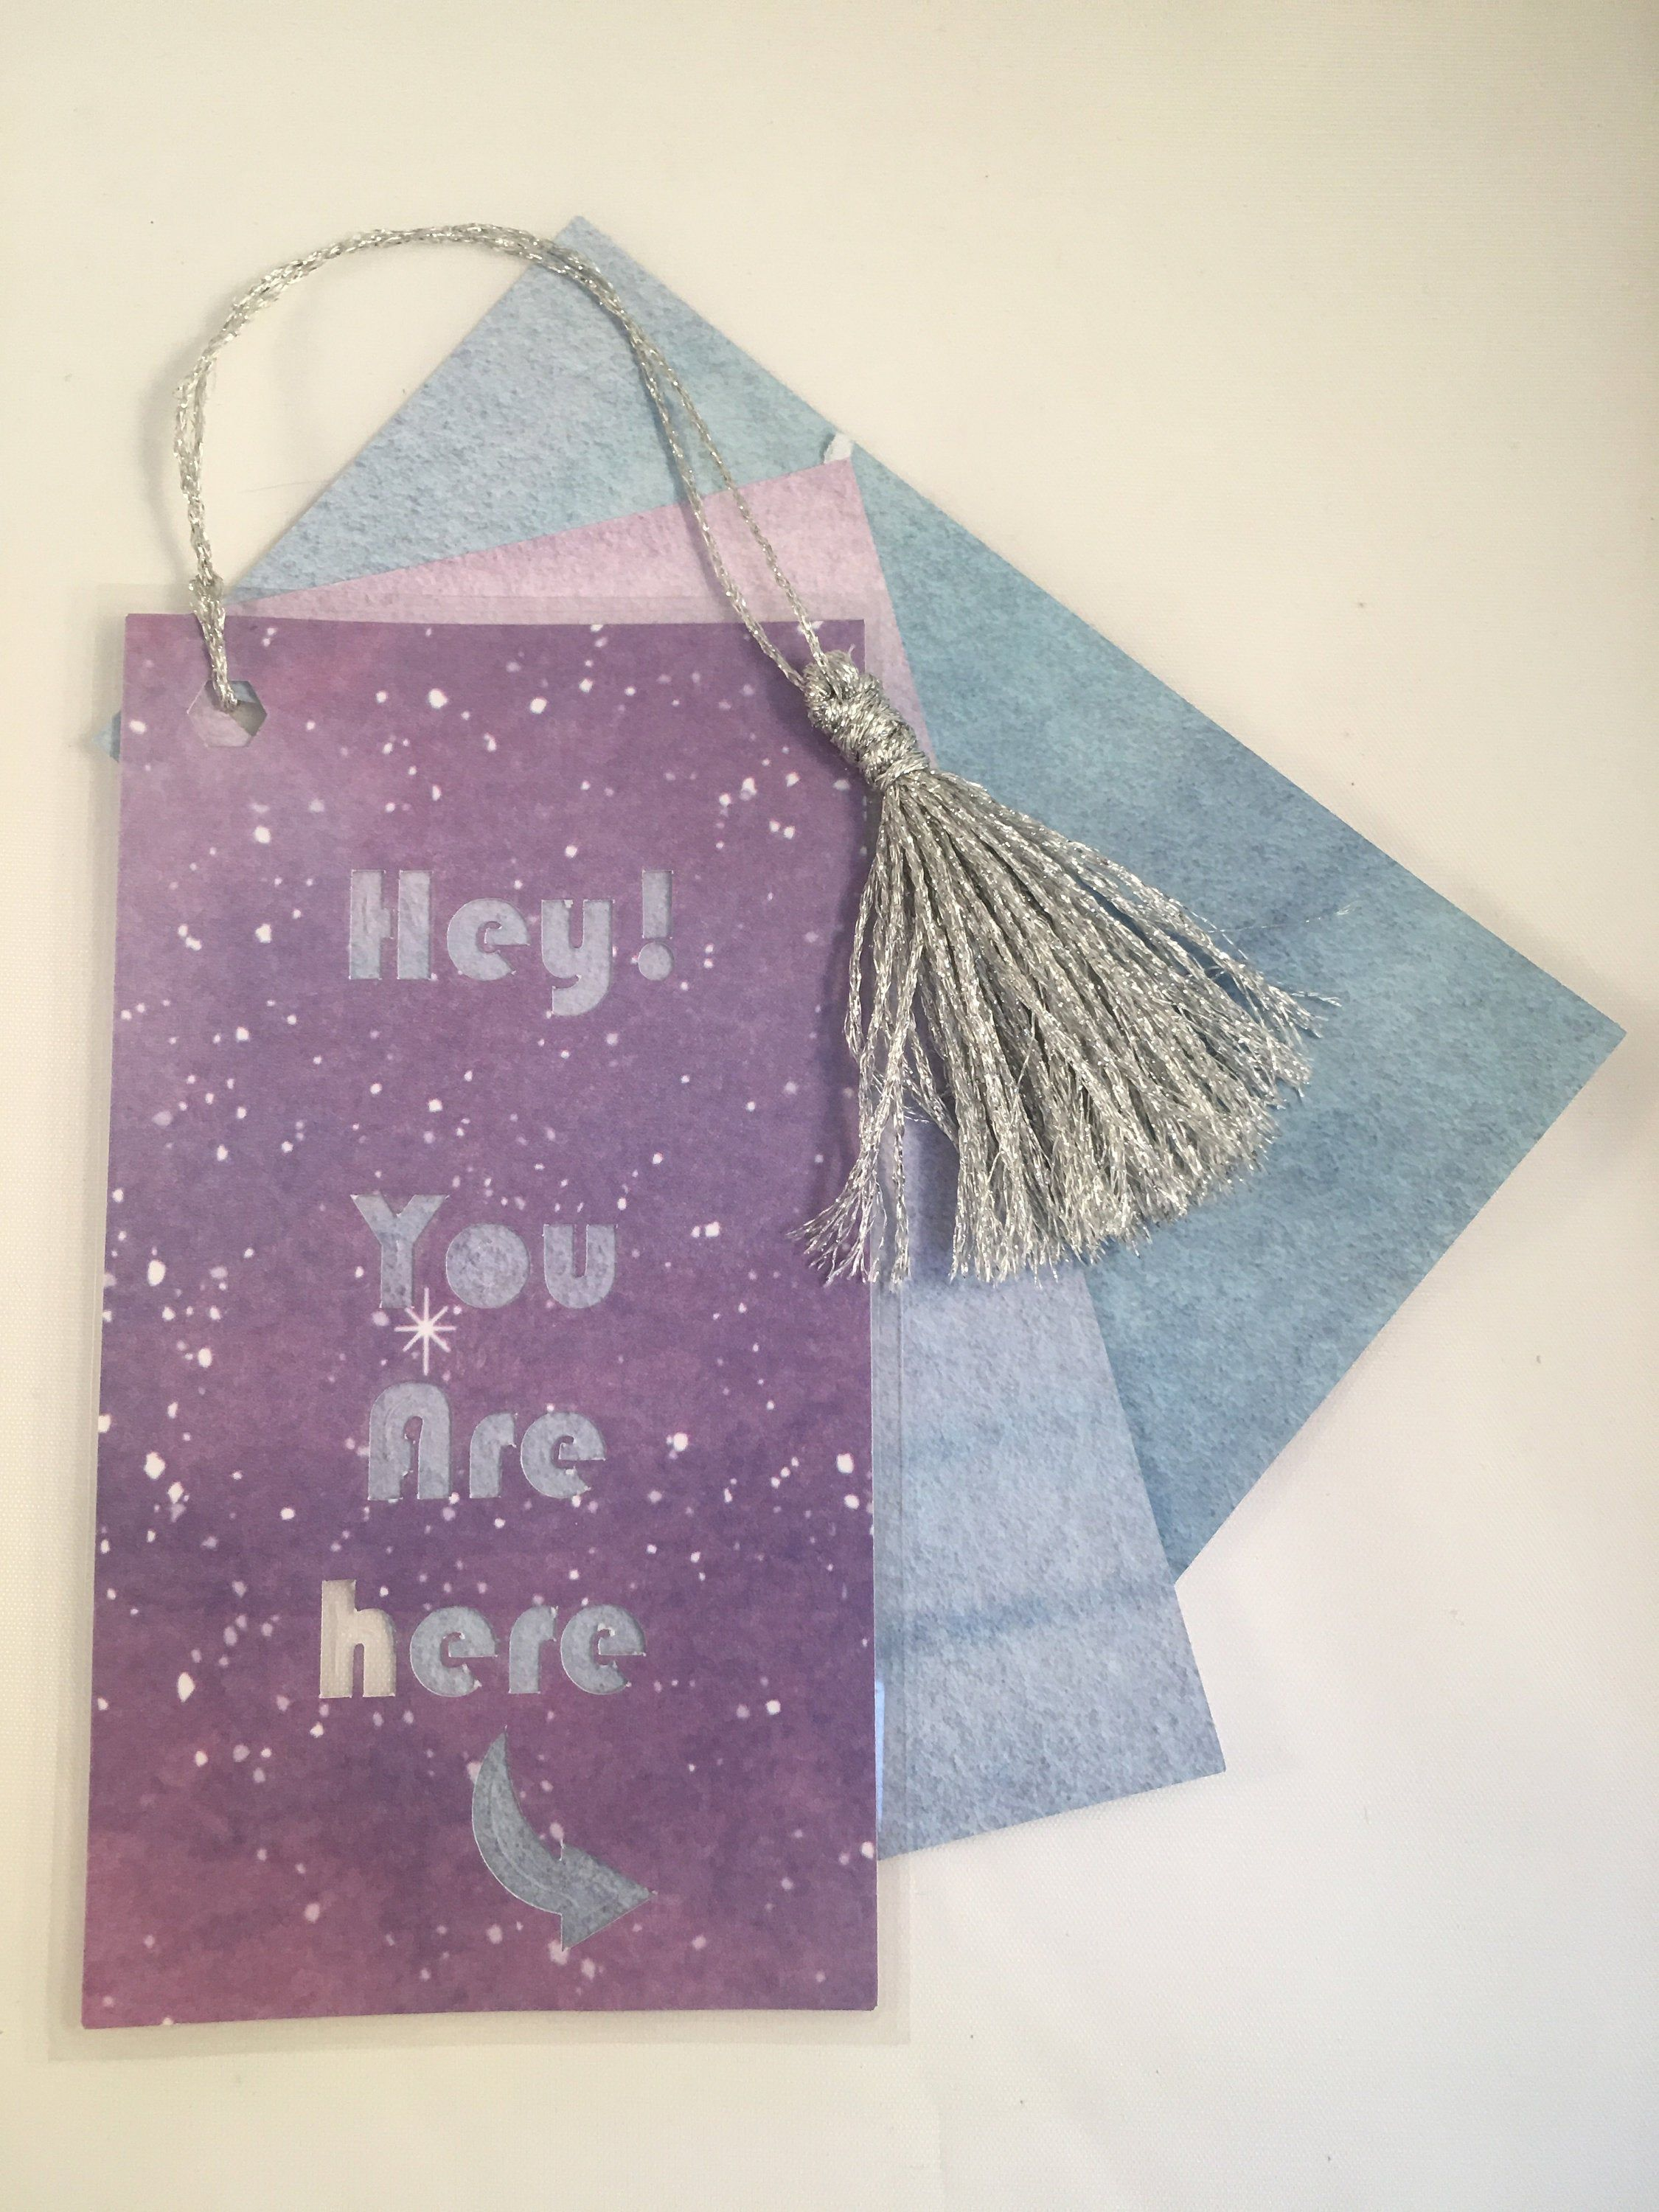 Purple star or night sky bookmark with two note-taking cardstock pages and silver tassle #dolistsorbooks